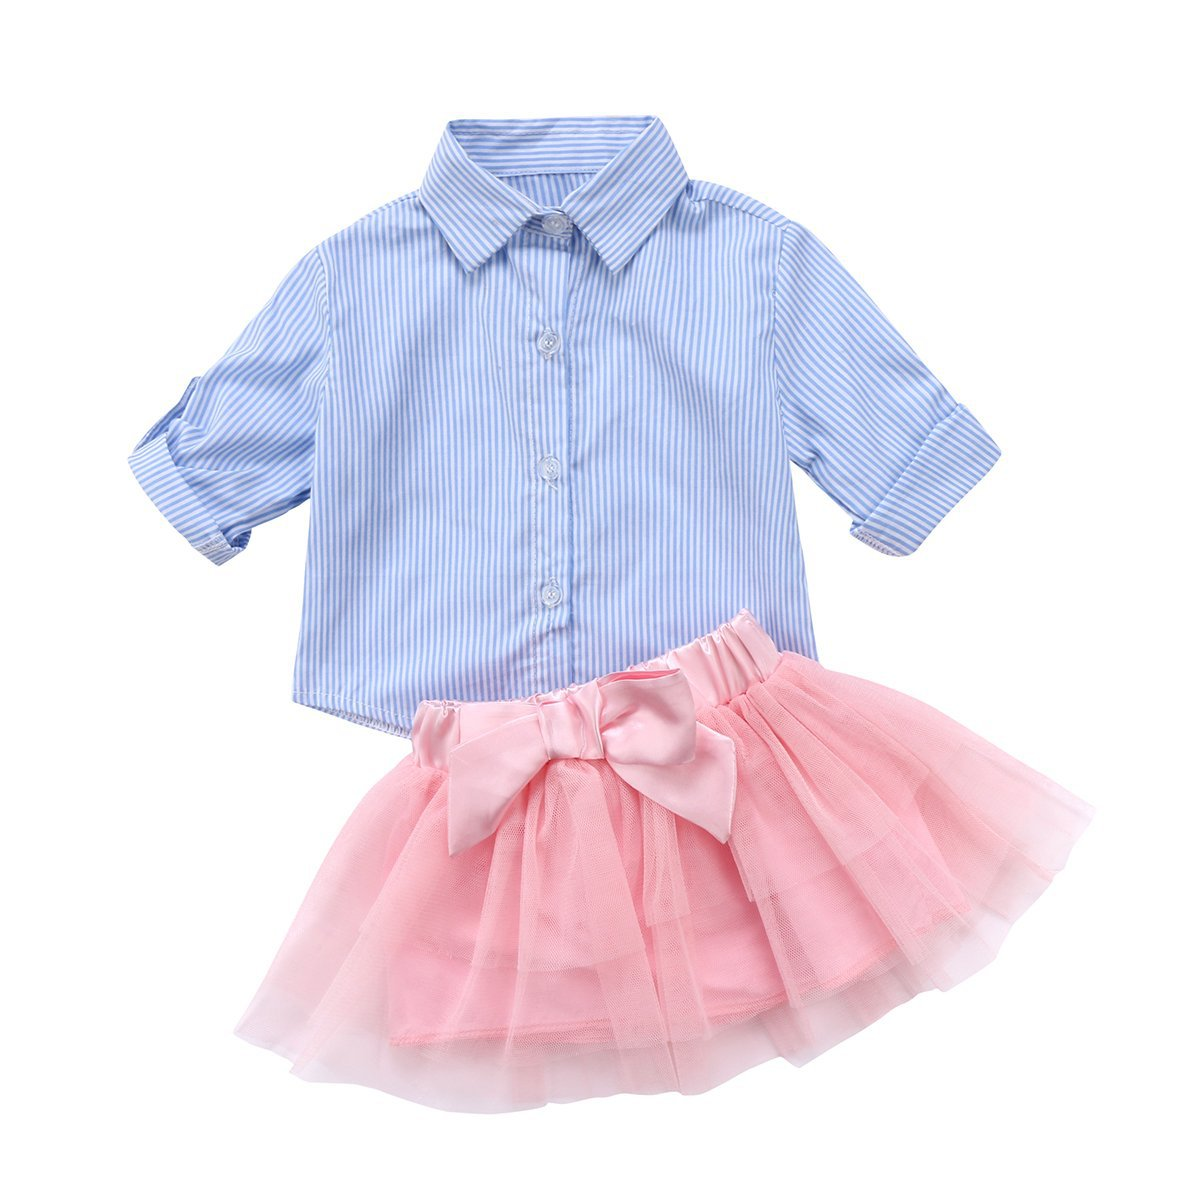 Striped Top & Tutu Skirt Set by Elsewhereshop